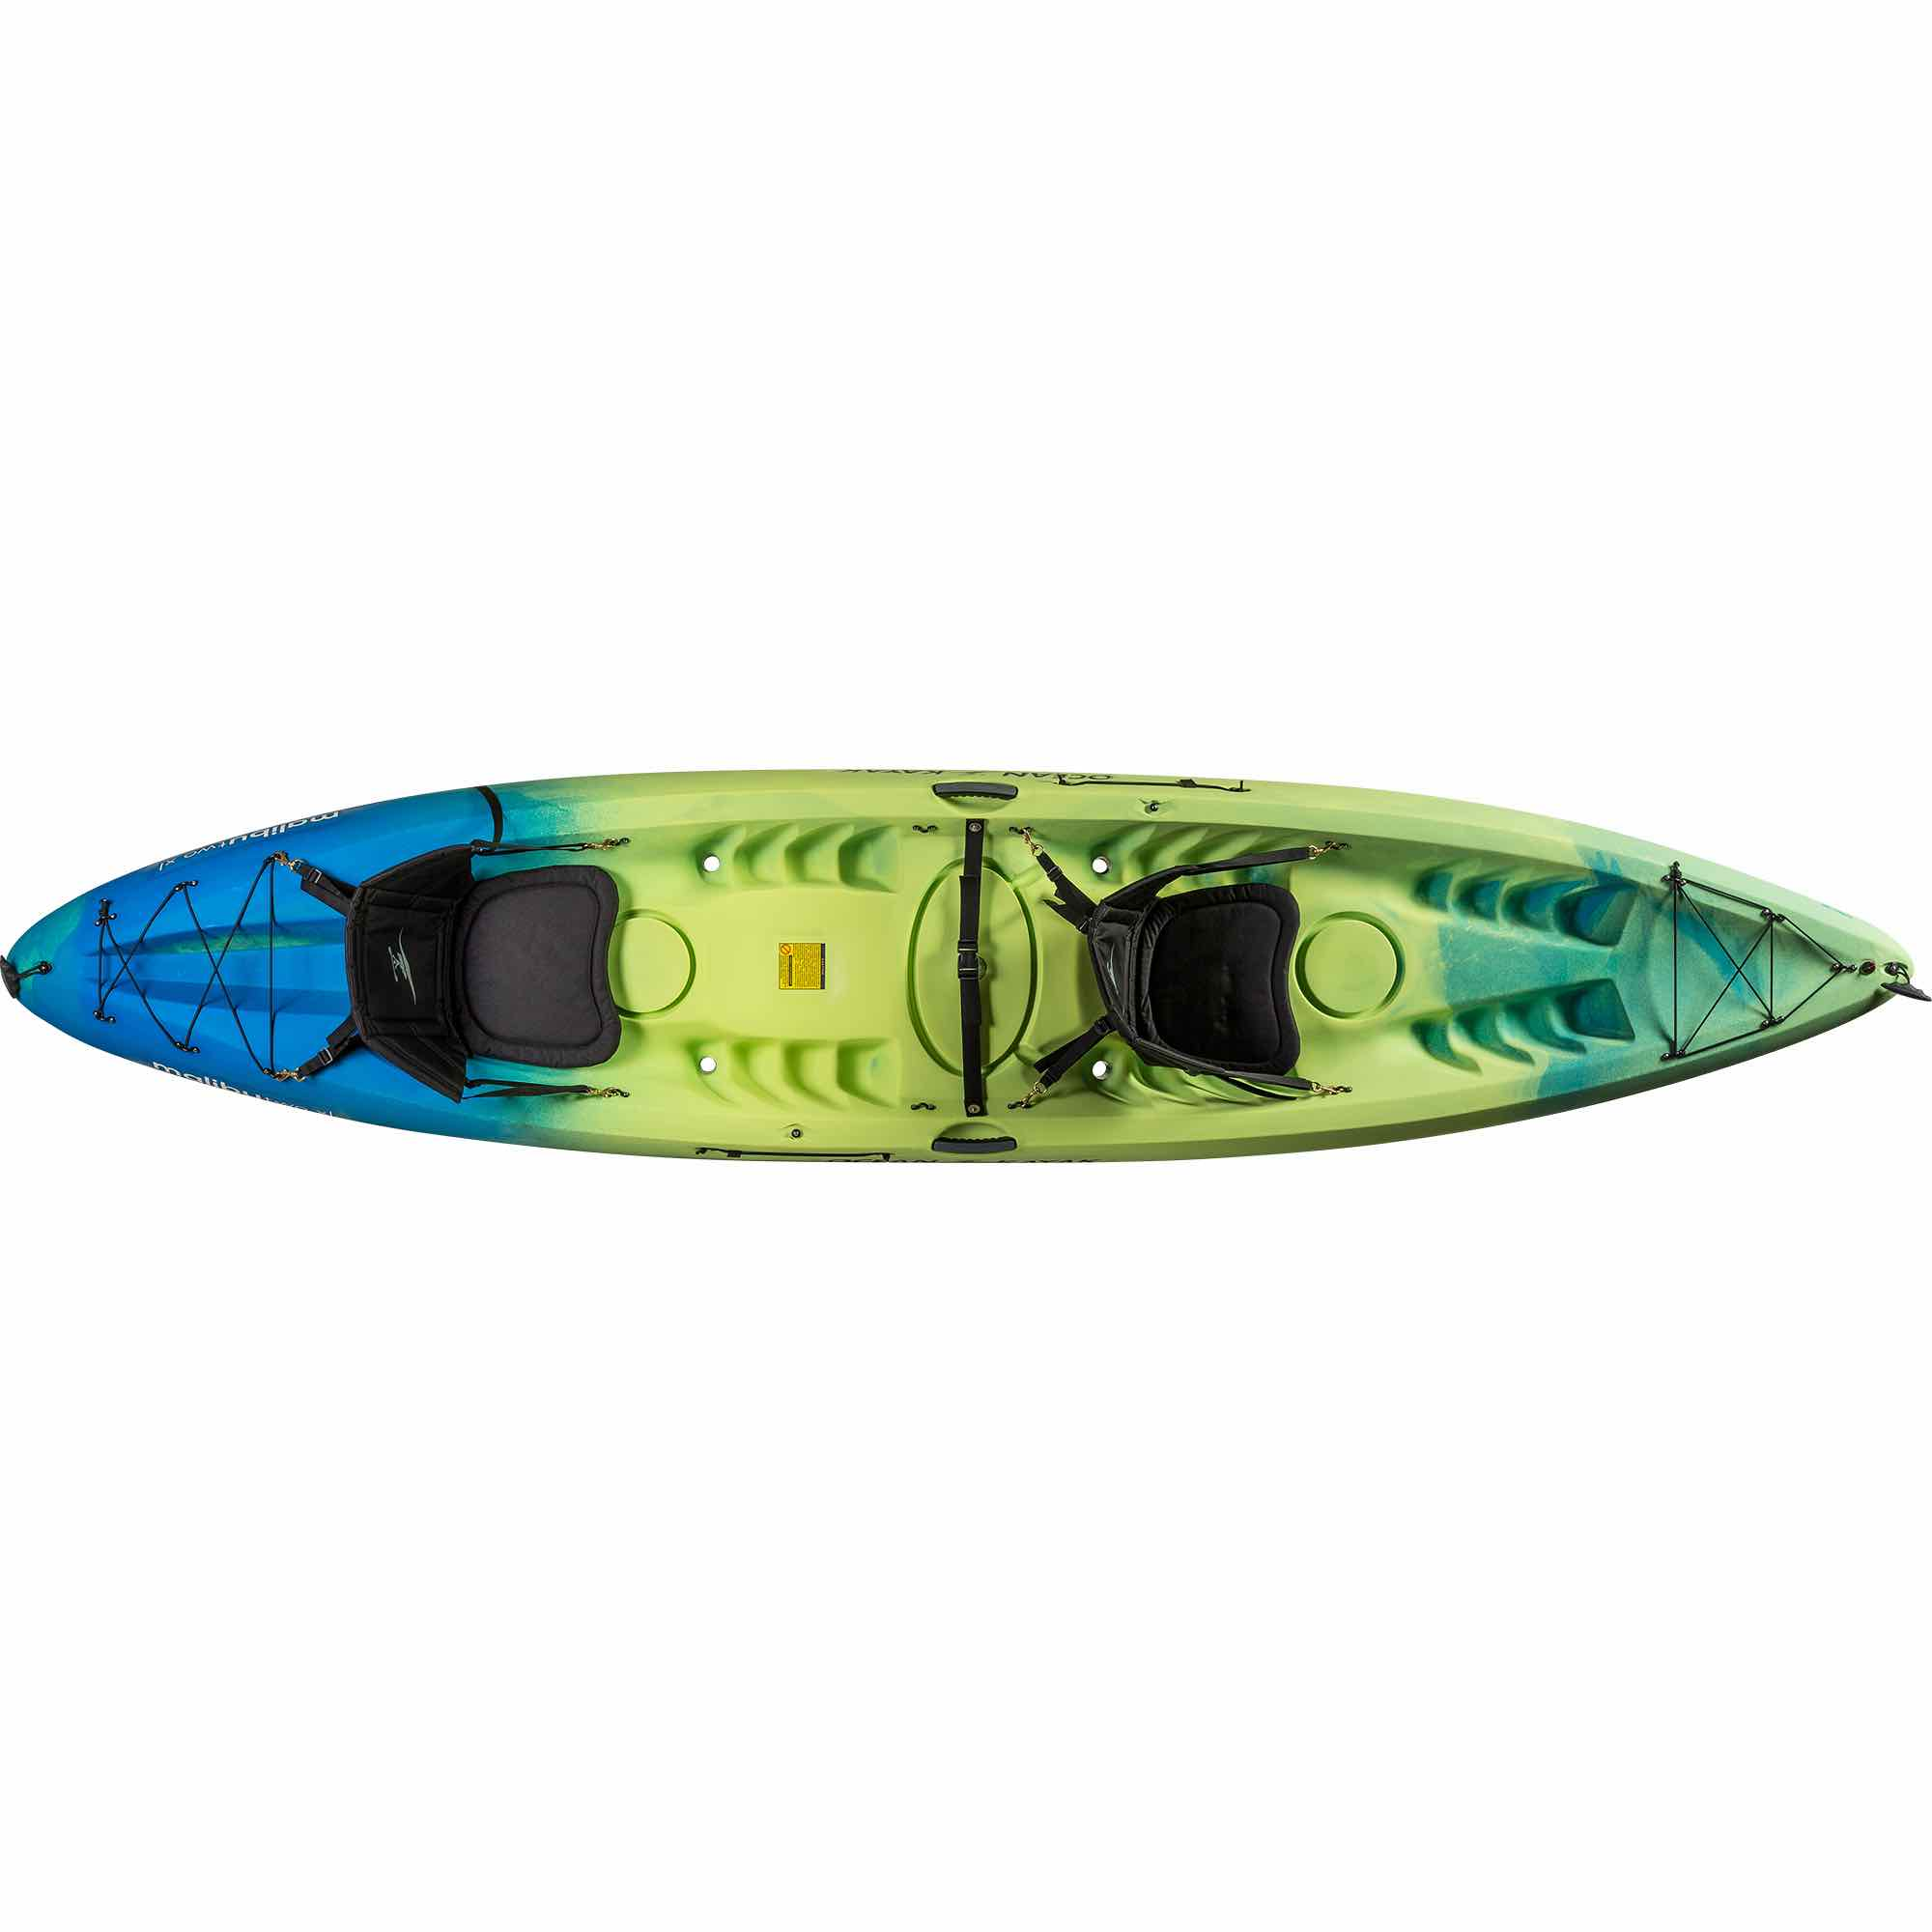 ocean kayak Malibu two 2 xl Tandam double kayak 3 person 2 person uk England family holiday camping seaside fun surf coast isle of wight paddles adventure activities earth wind water surf tackt-isle shop package deal